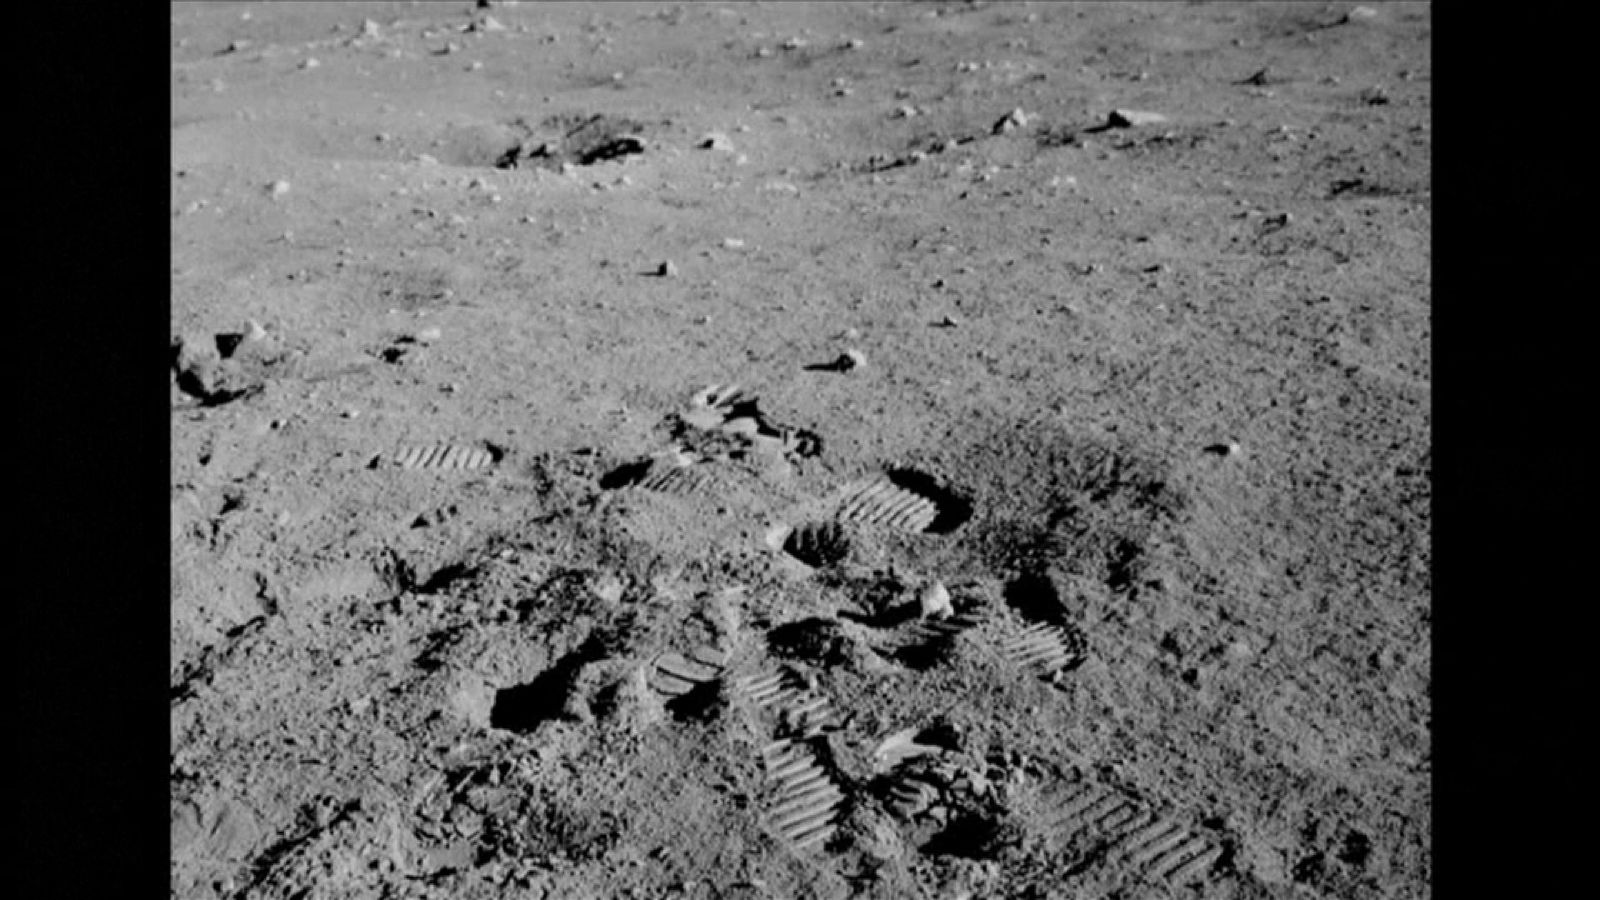 The footsteps of Eugene Cernan in the dust of the Moon's surface